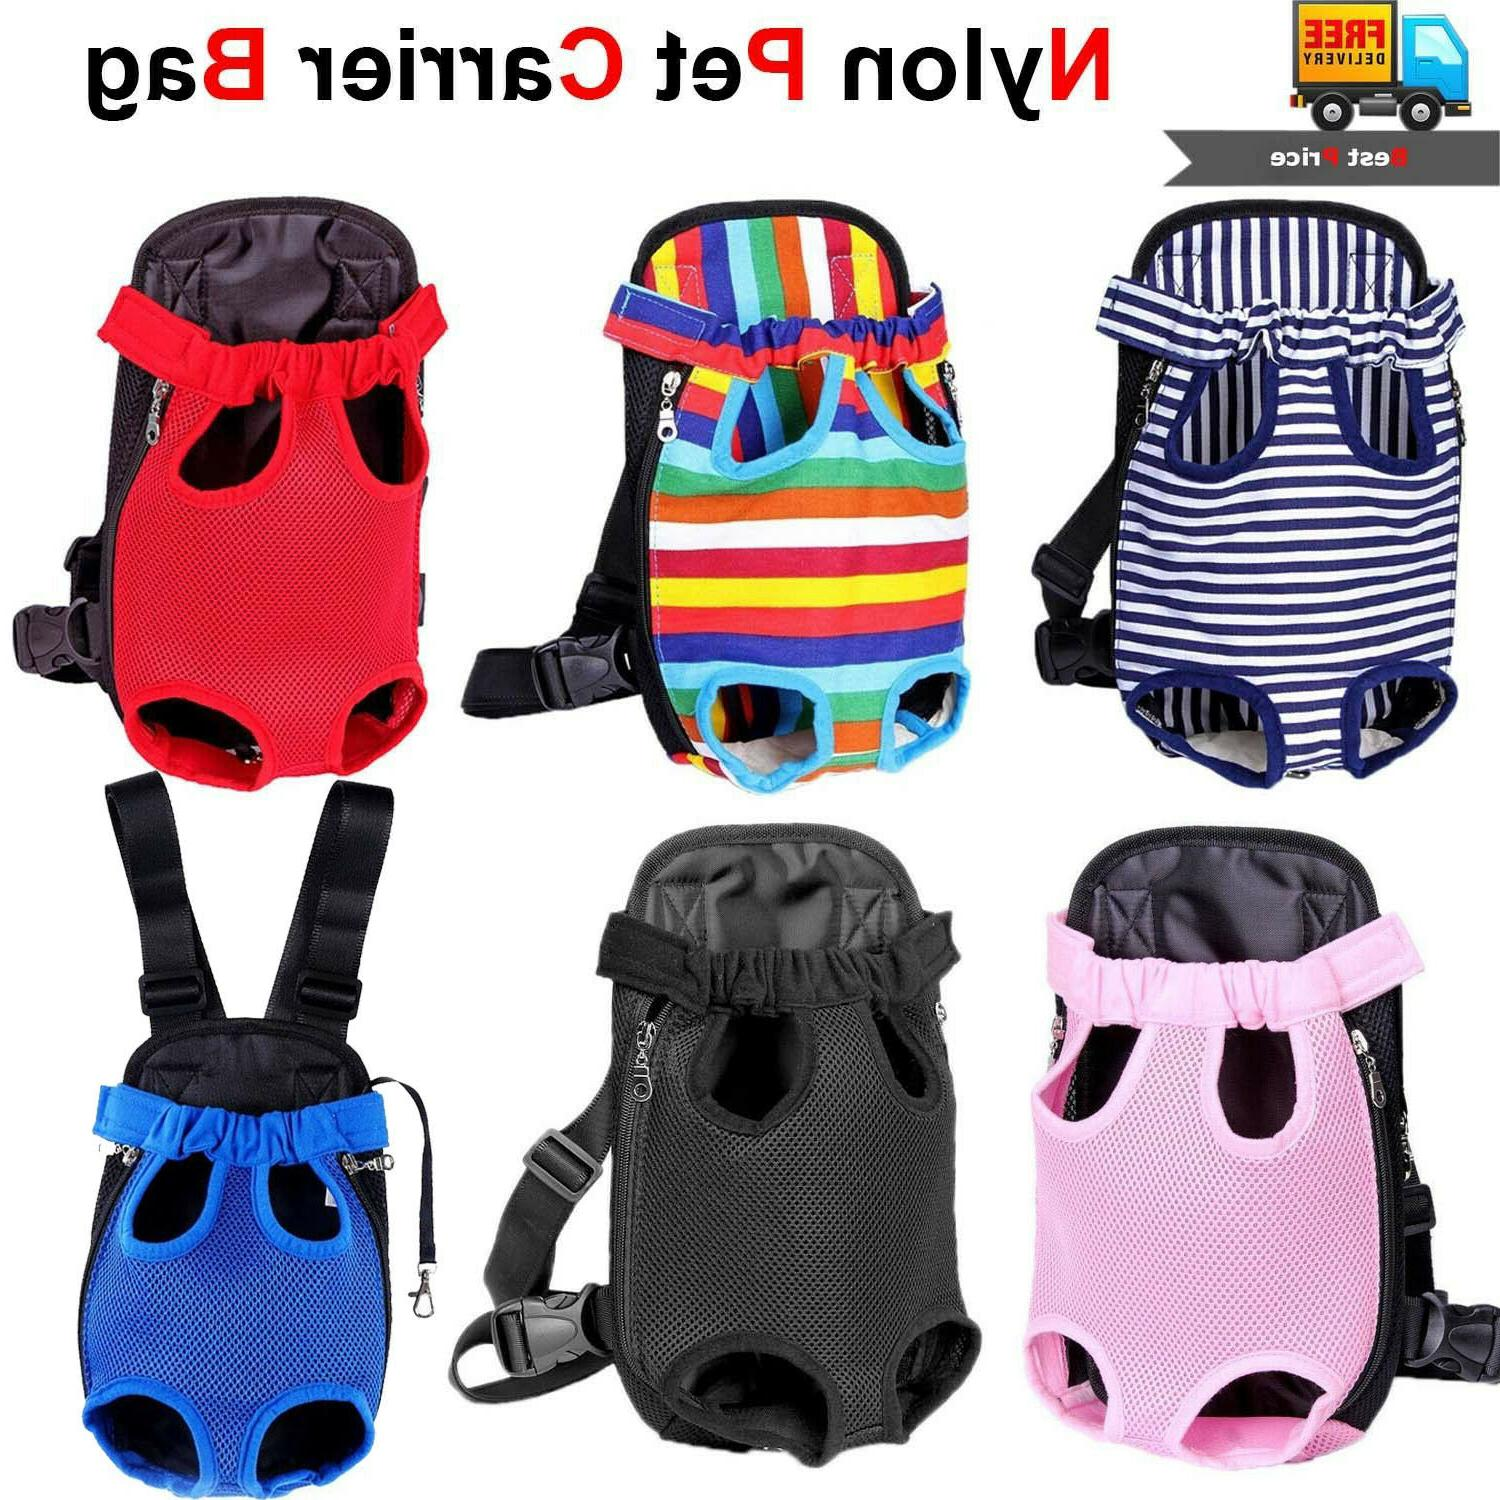 nylon mesh pet puppy dog cat carrier